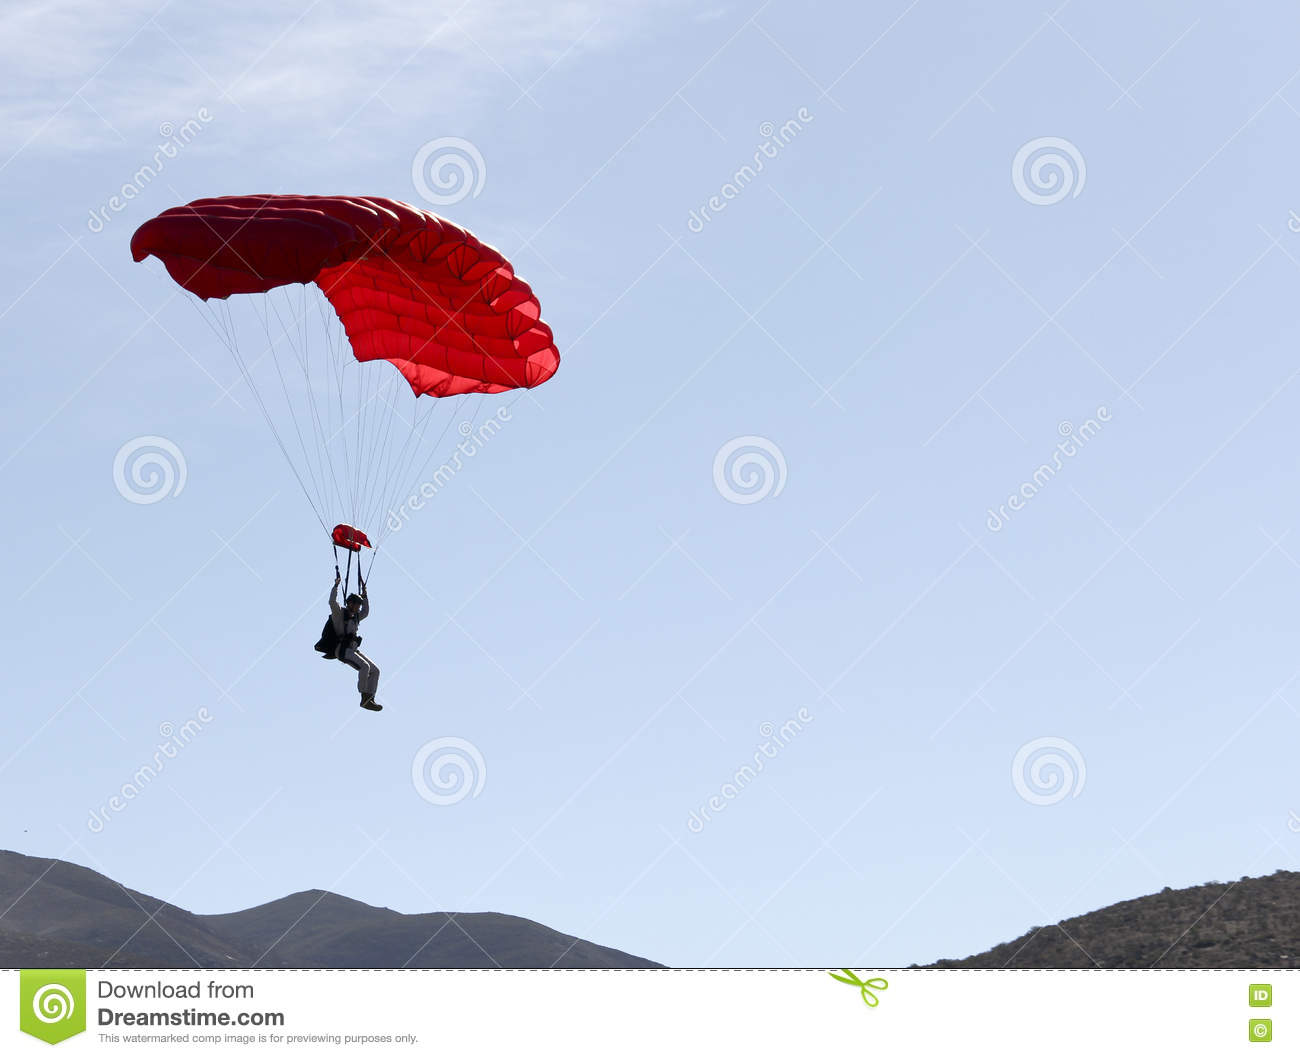 Parachute jumper floating to the ground